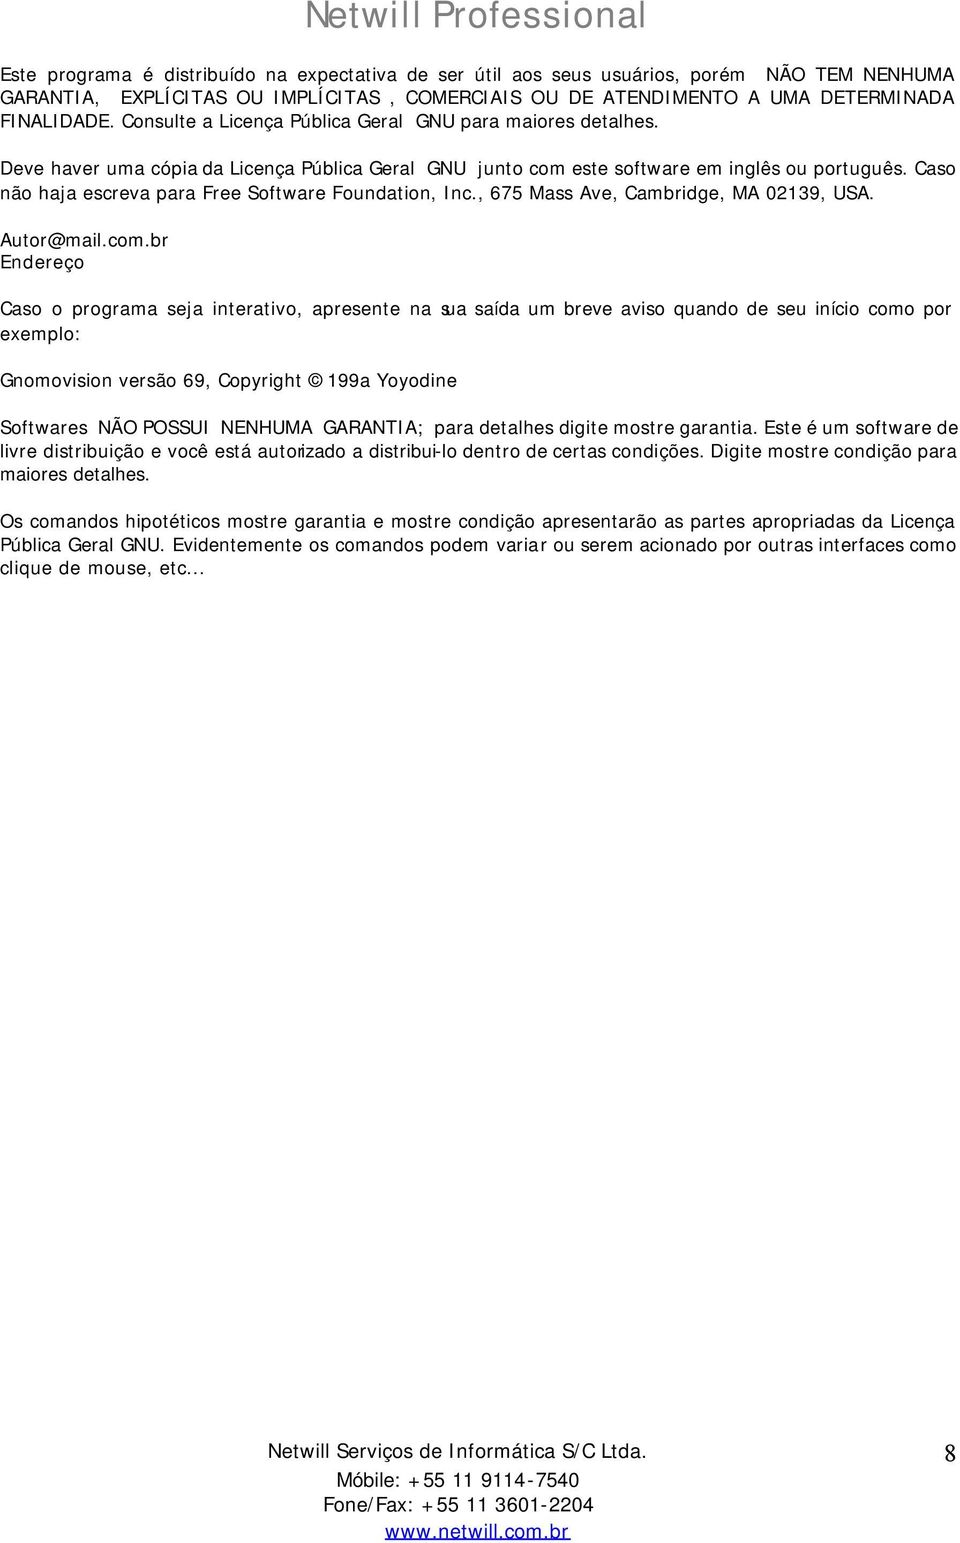 Caso não haja escreva para Free Software Foundation, Inc., 675 Mass Ave, Cambridge, MA 02139, USA. Autor@mail.com.